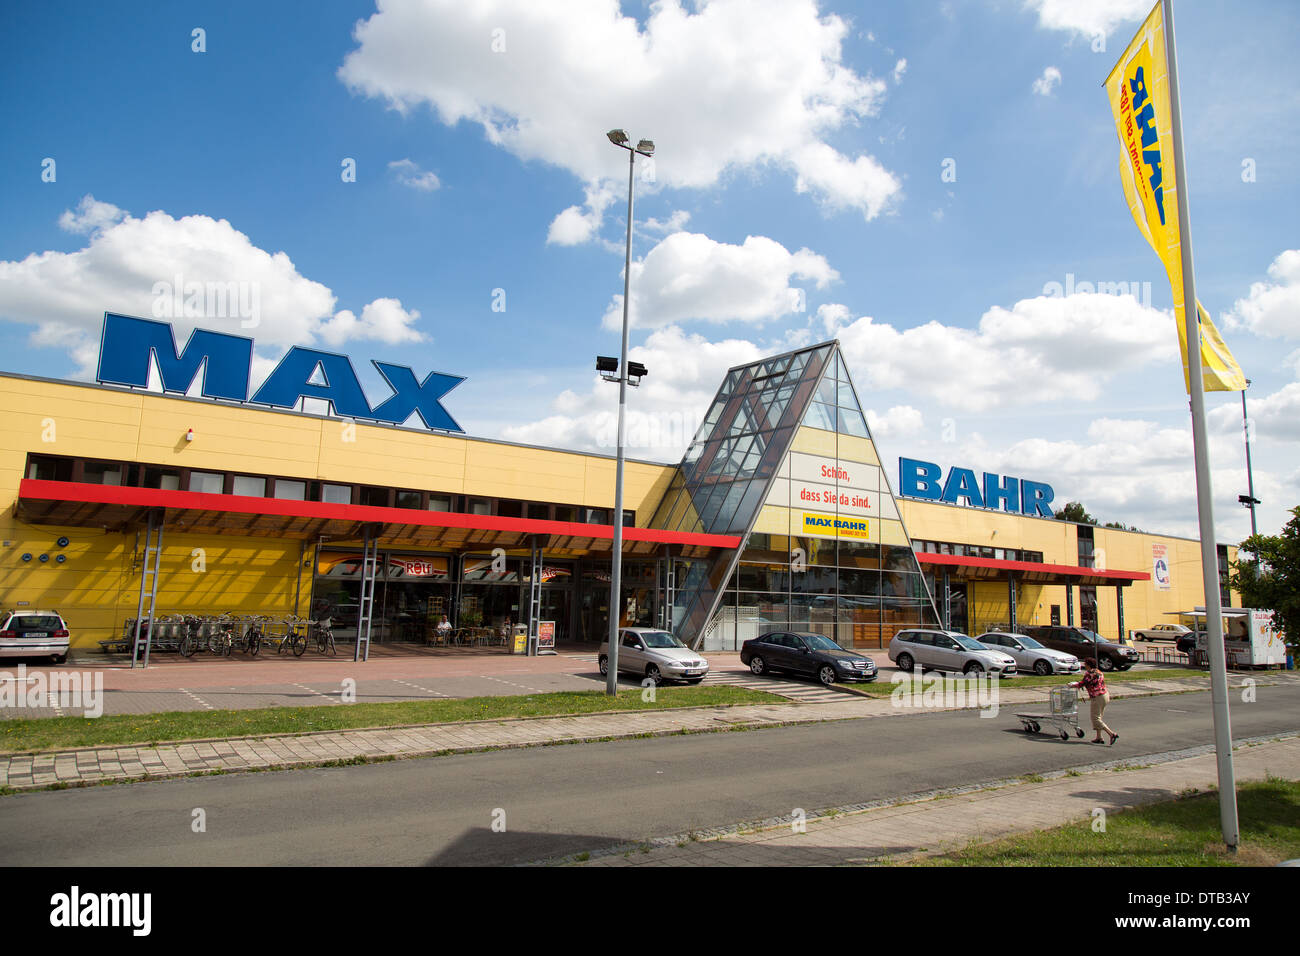 max bahr stock photos & max bahr stock images - alamy